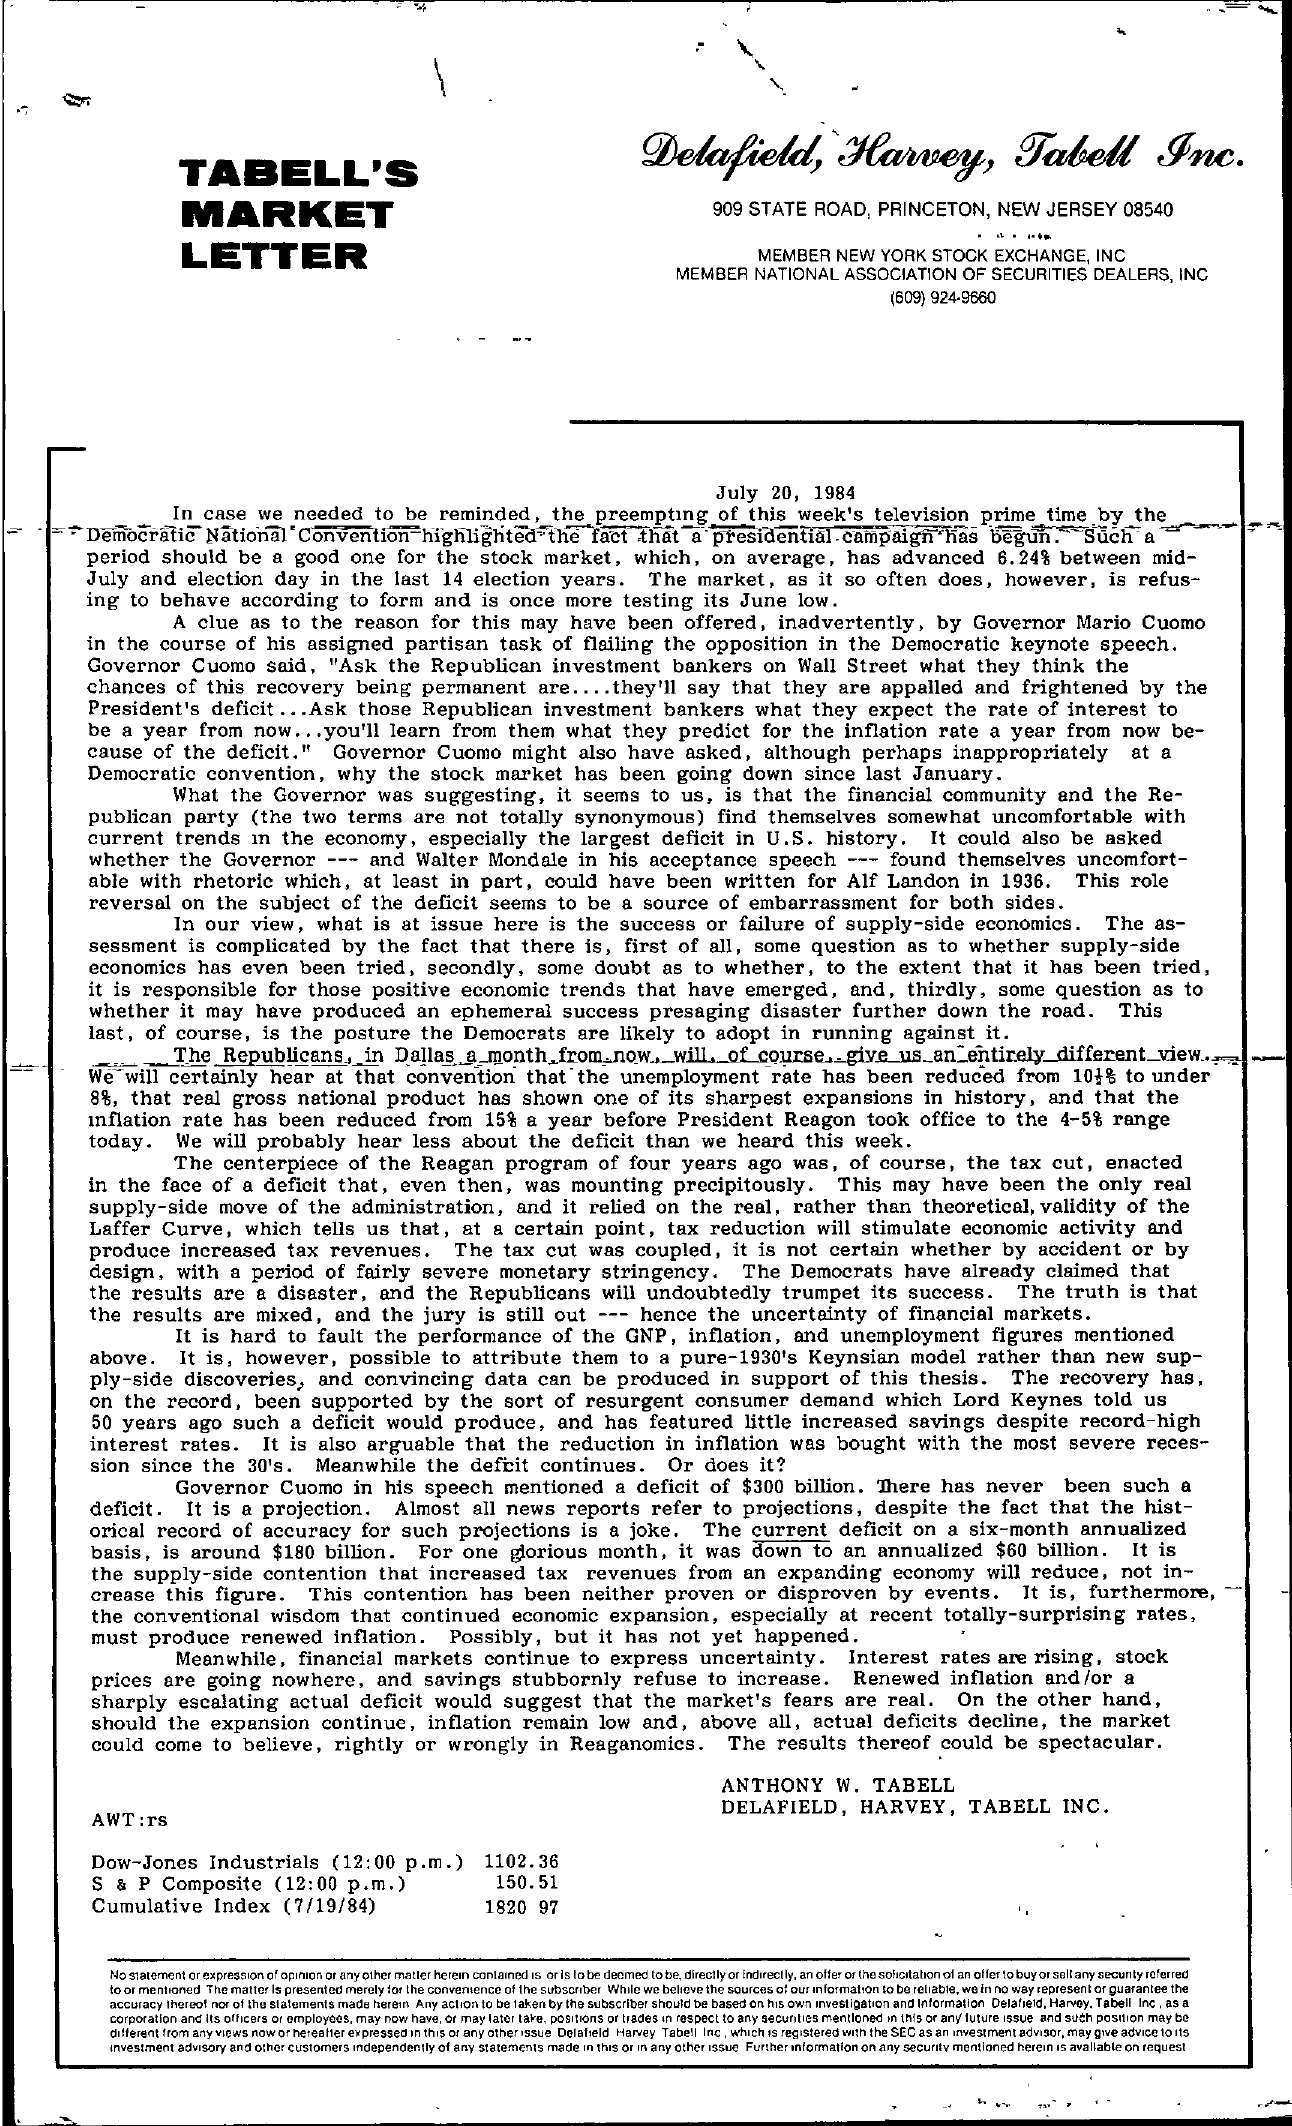 Tabell's Market Letter - July 20, 1984